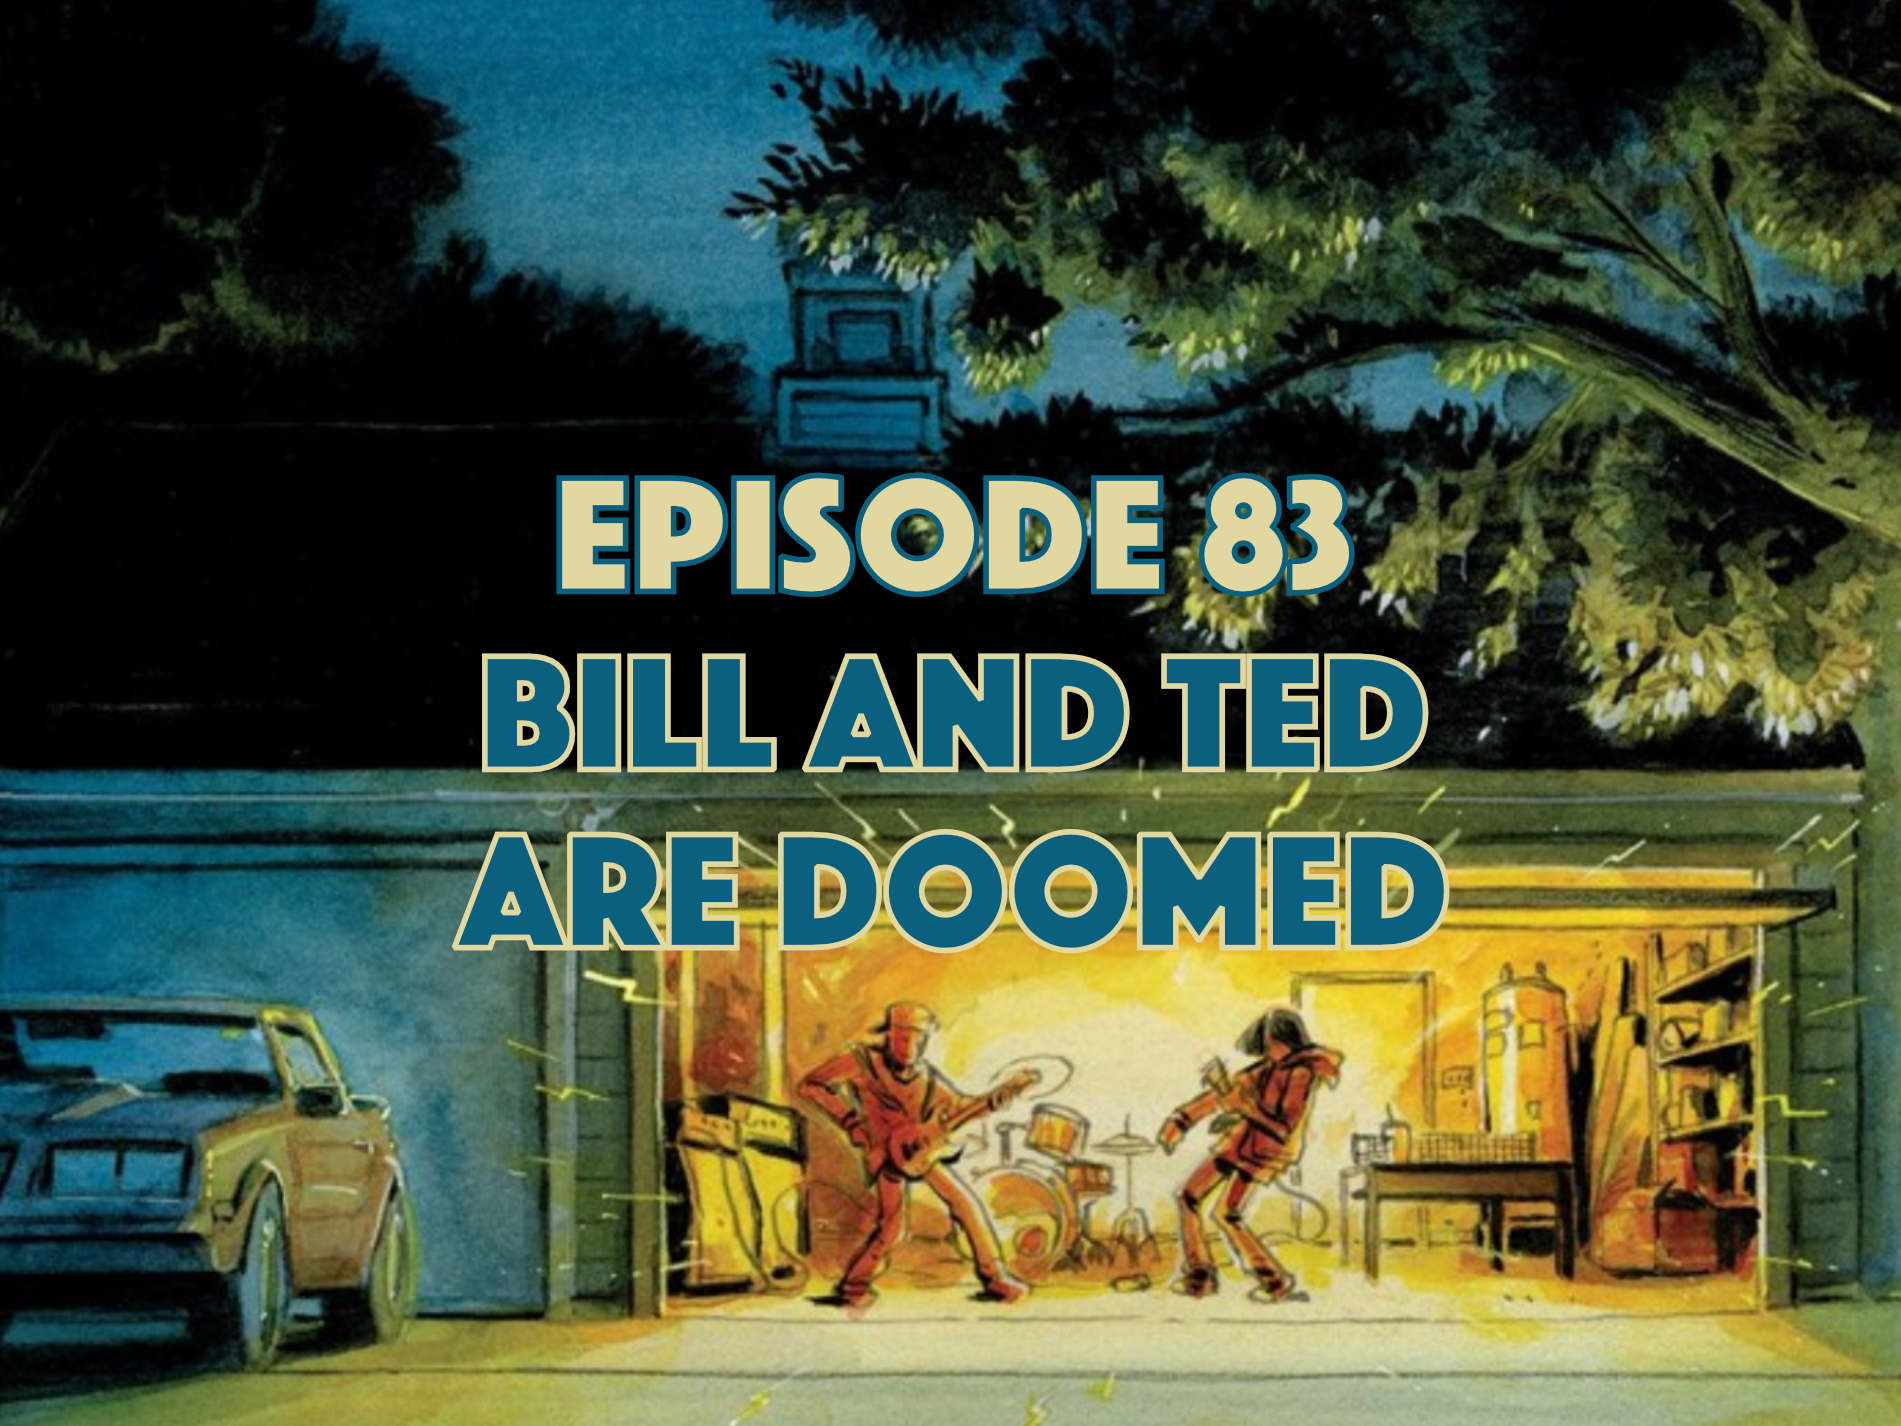 Bill and Ted, Bill and Ted Are Doomed, Graphic Novel Explorers Club, Comic Book Podcast, Graphic Novel Podcast, Graphic Novel Explorers Club, Comic Book Podcast, Graphic Novel Podcast